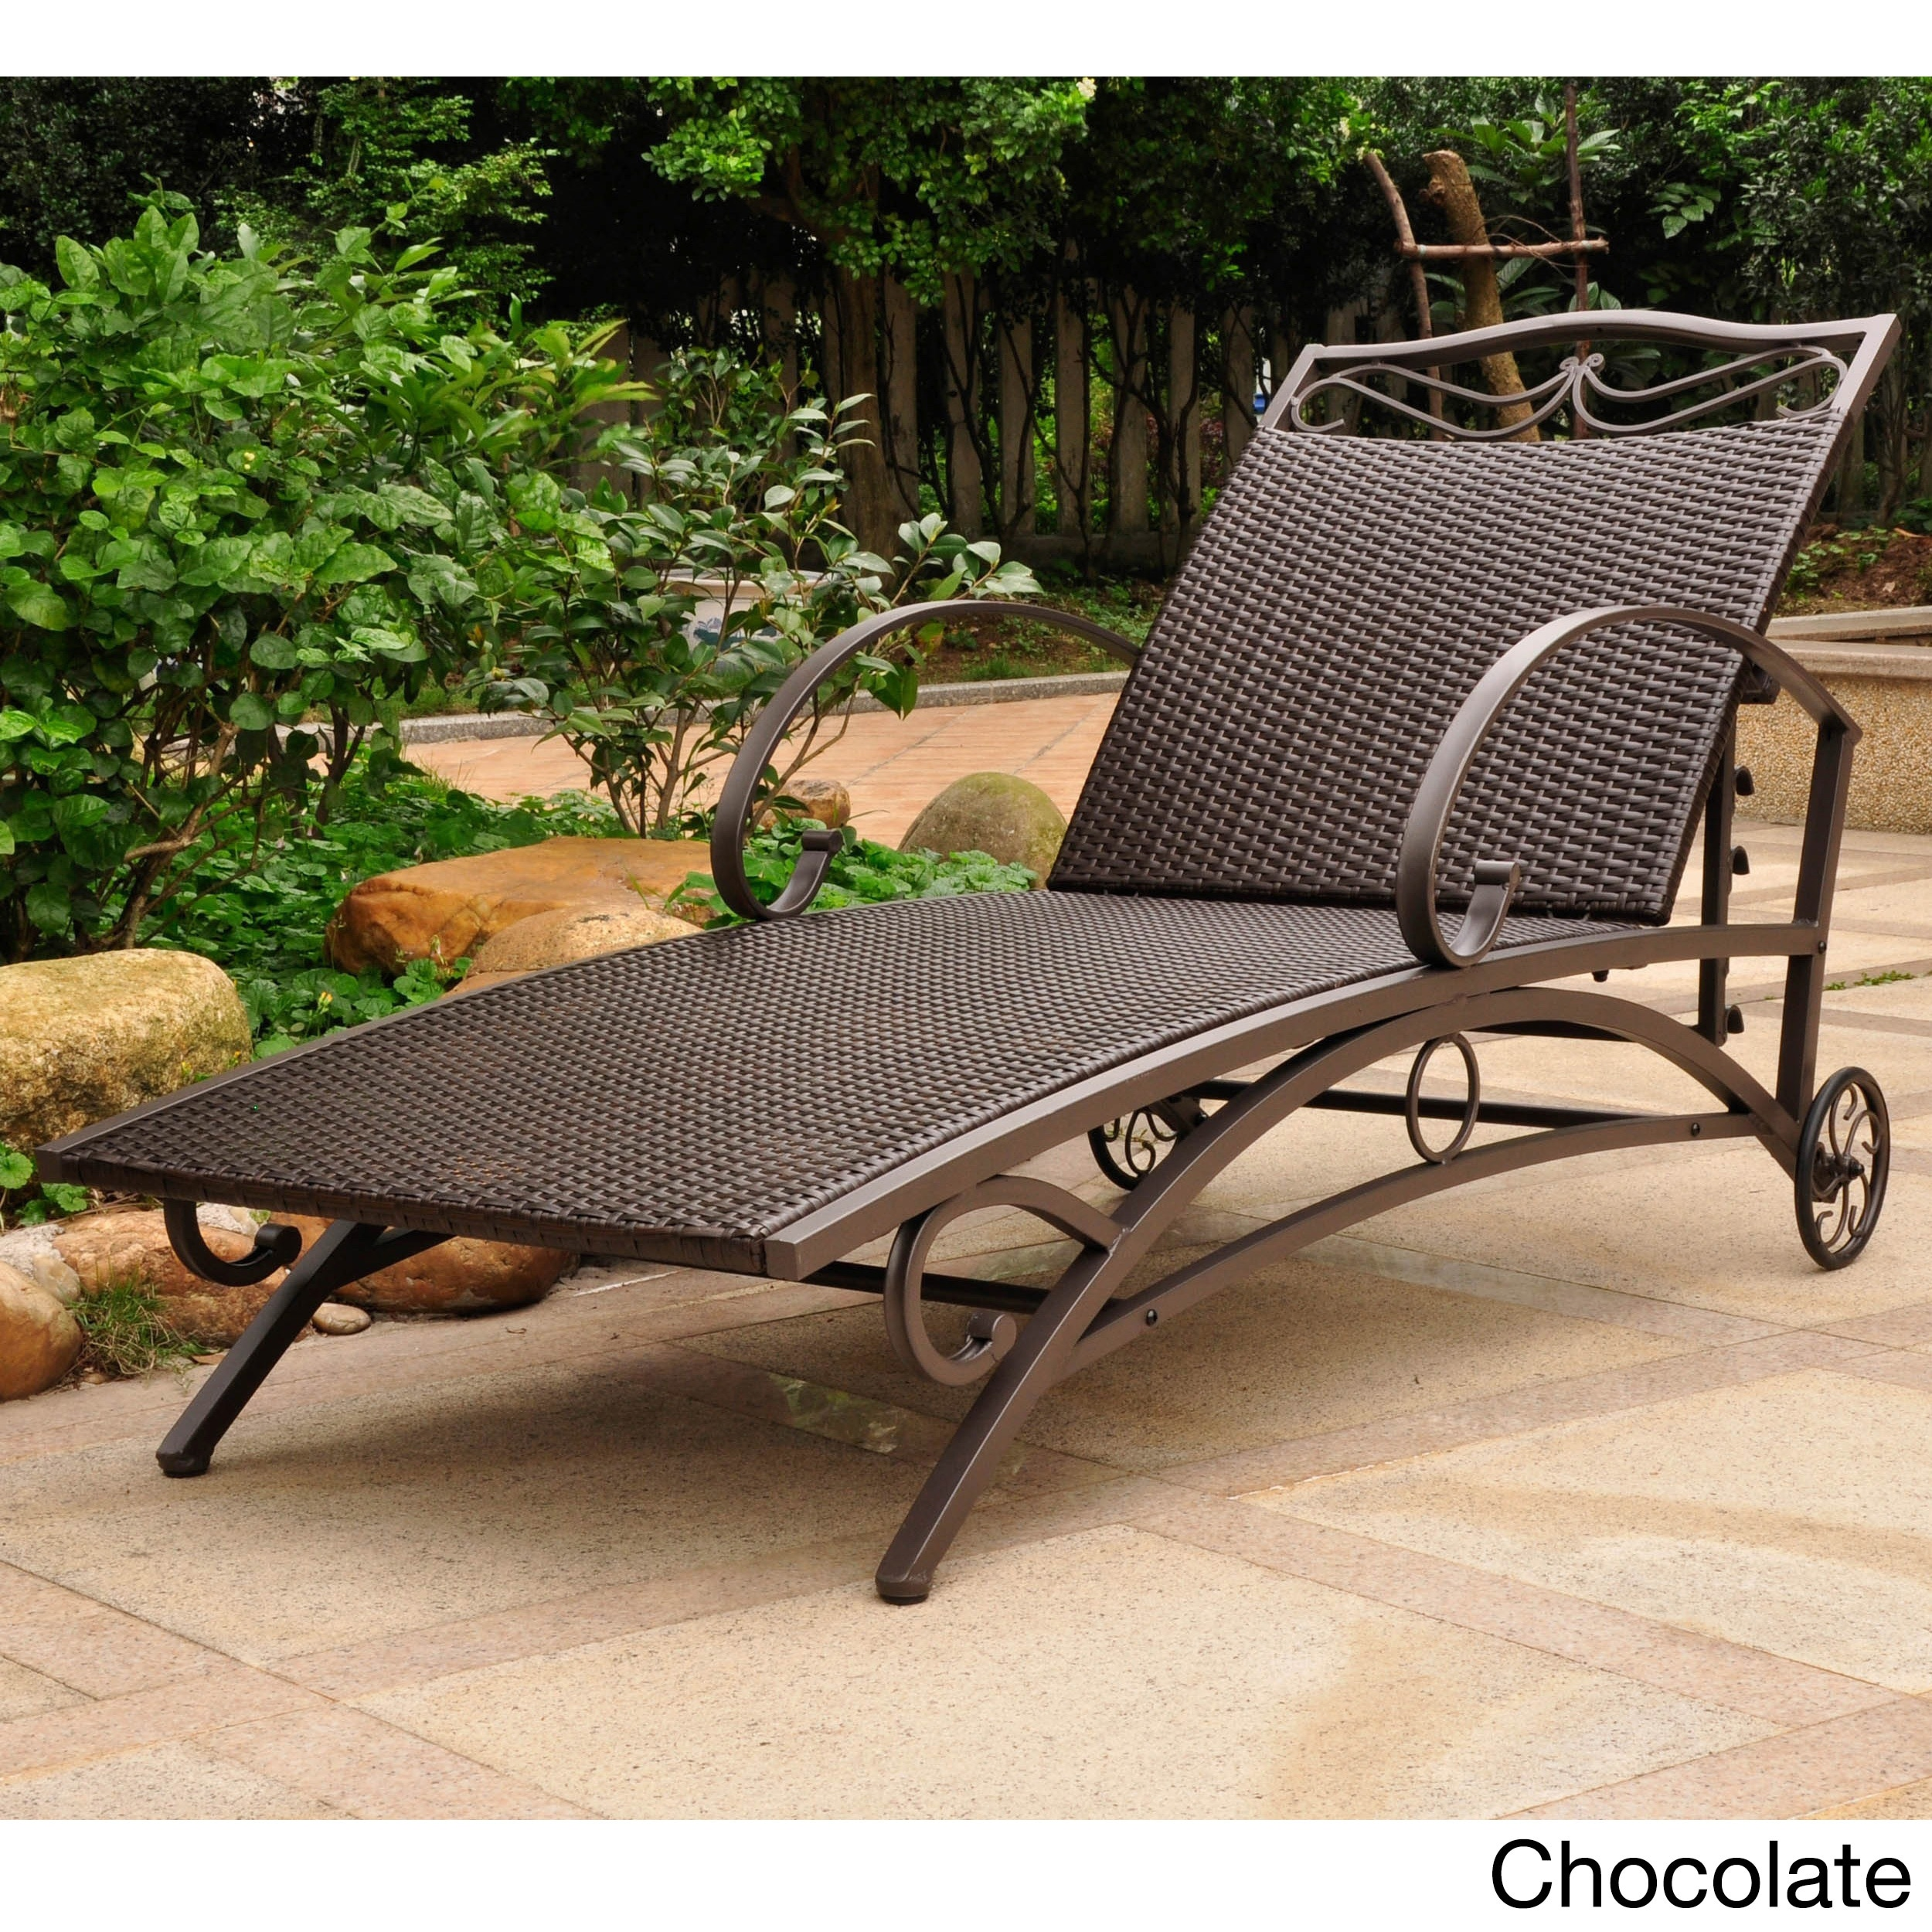 decorating home full ideas poolside chaise size decoration chair and of beach plastic design lounge folding